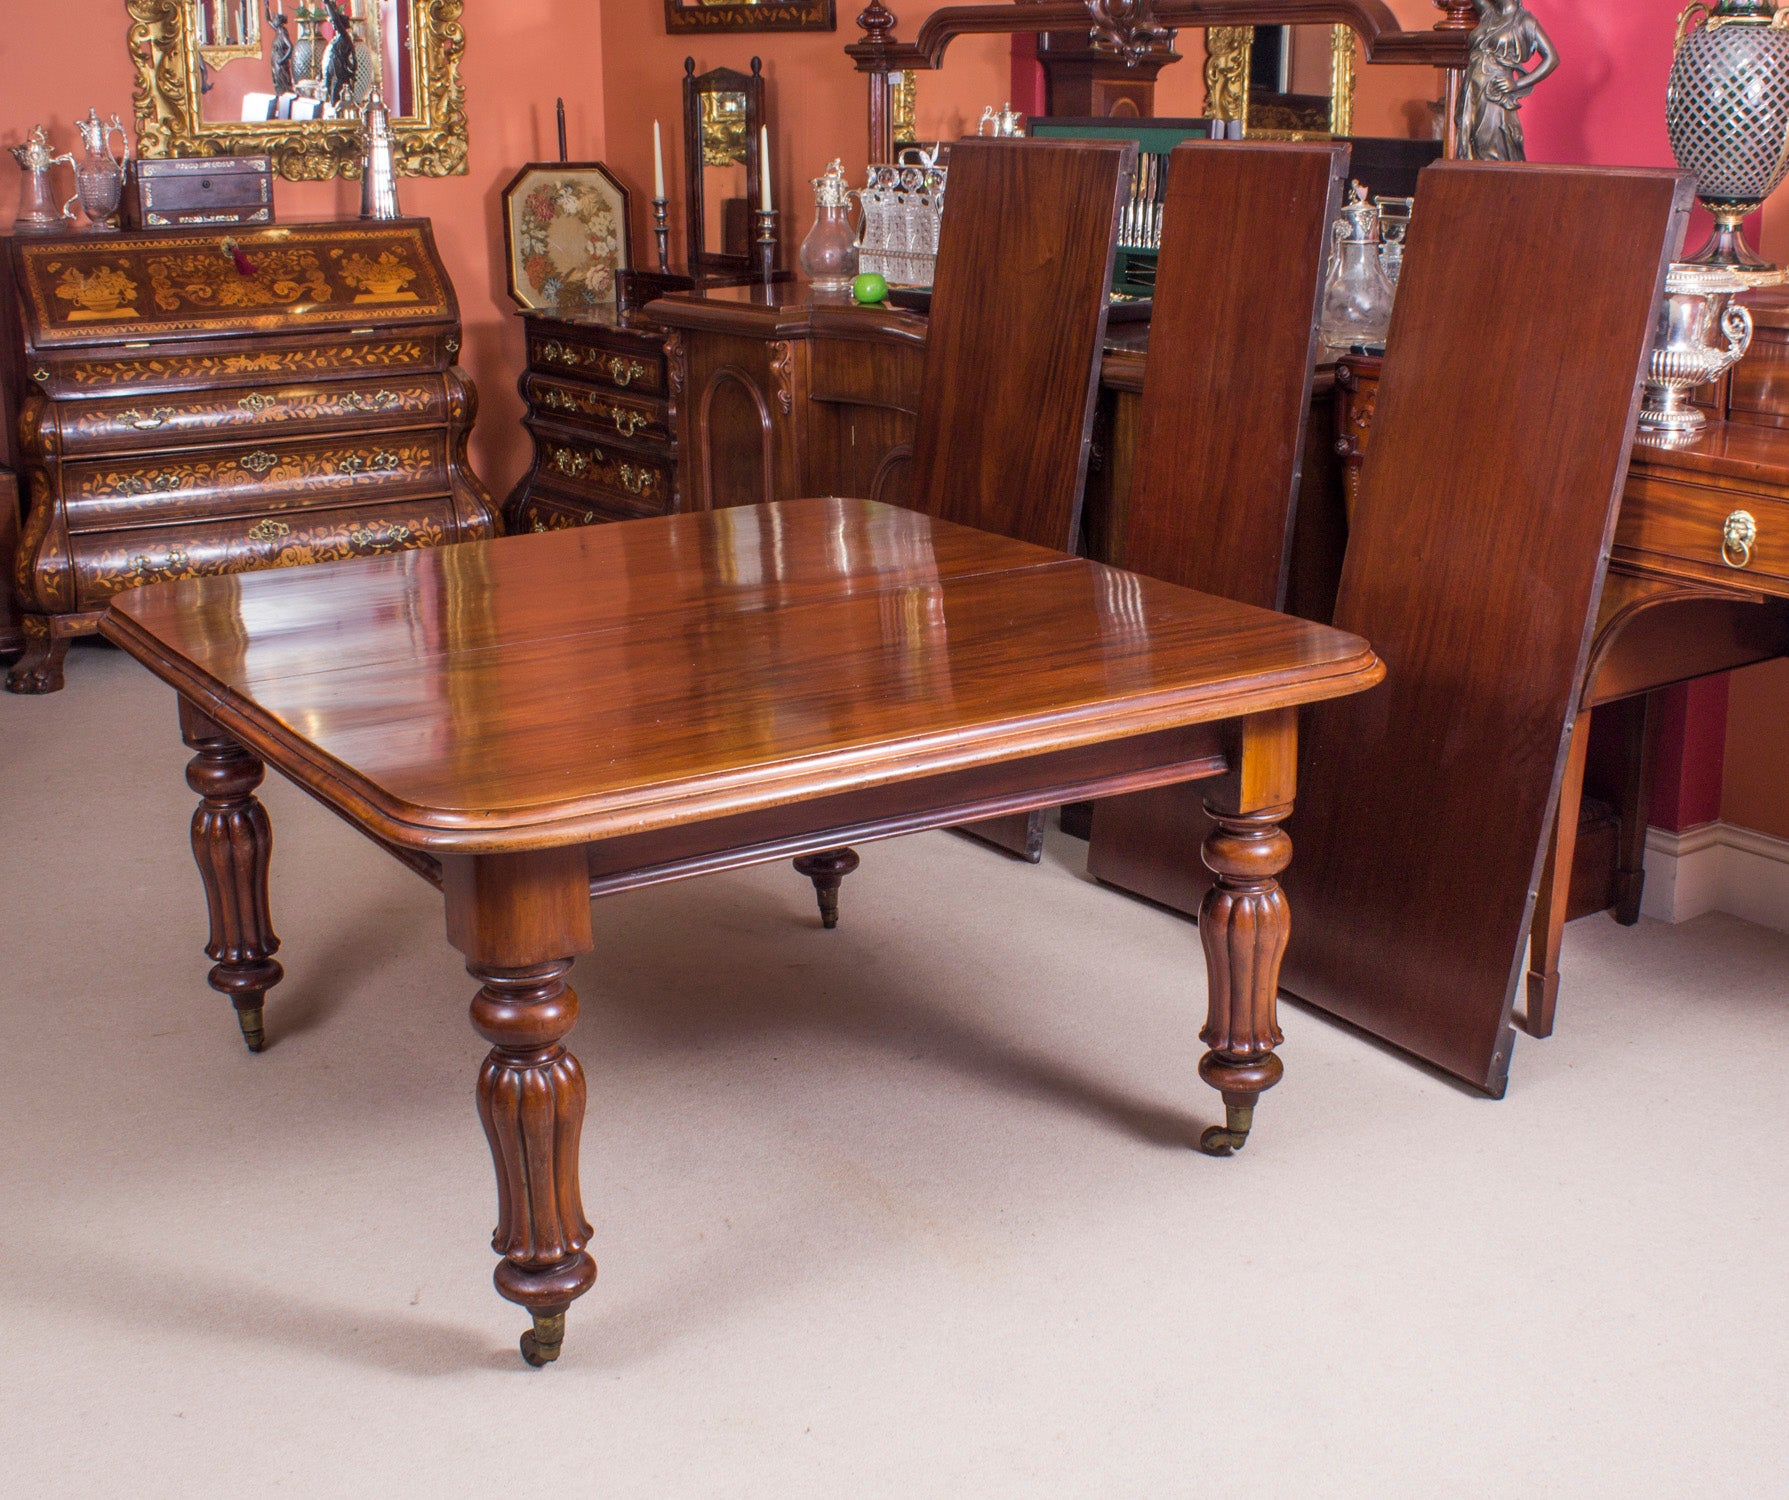 19th century william iv mahogany dining table and 12 chairs at 1stdibs dzzzfo